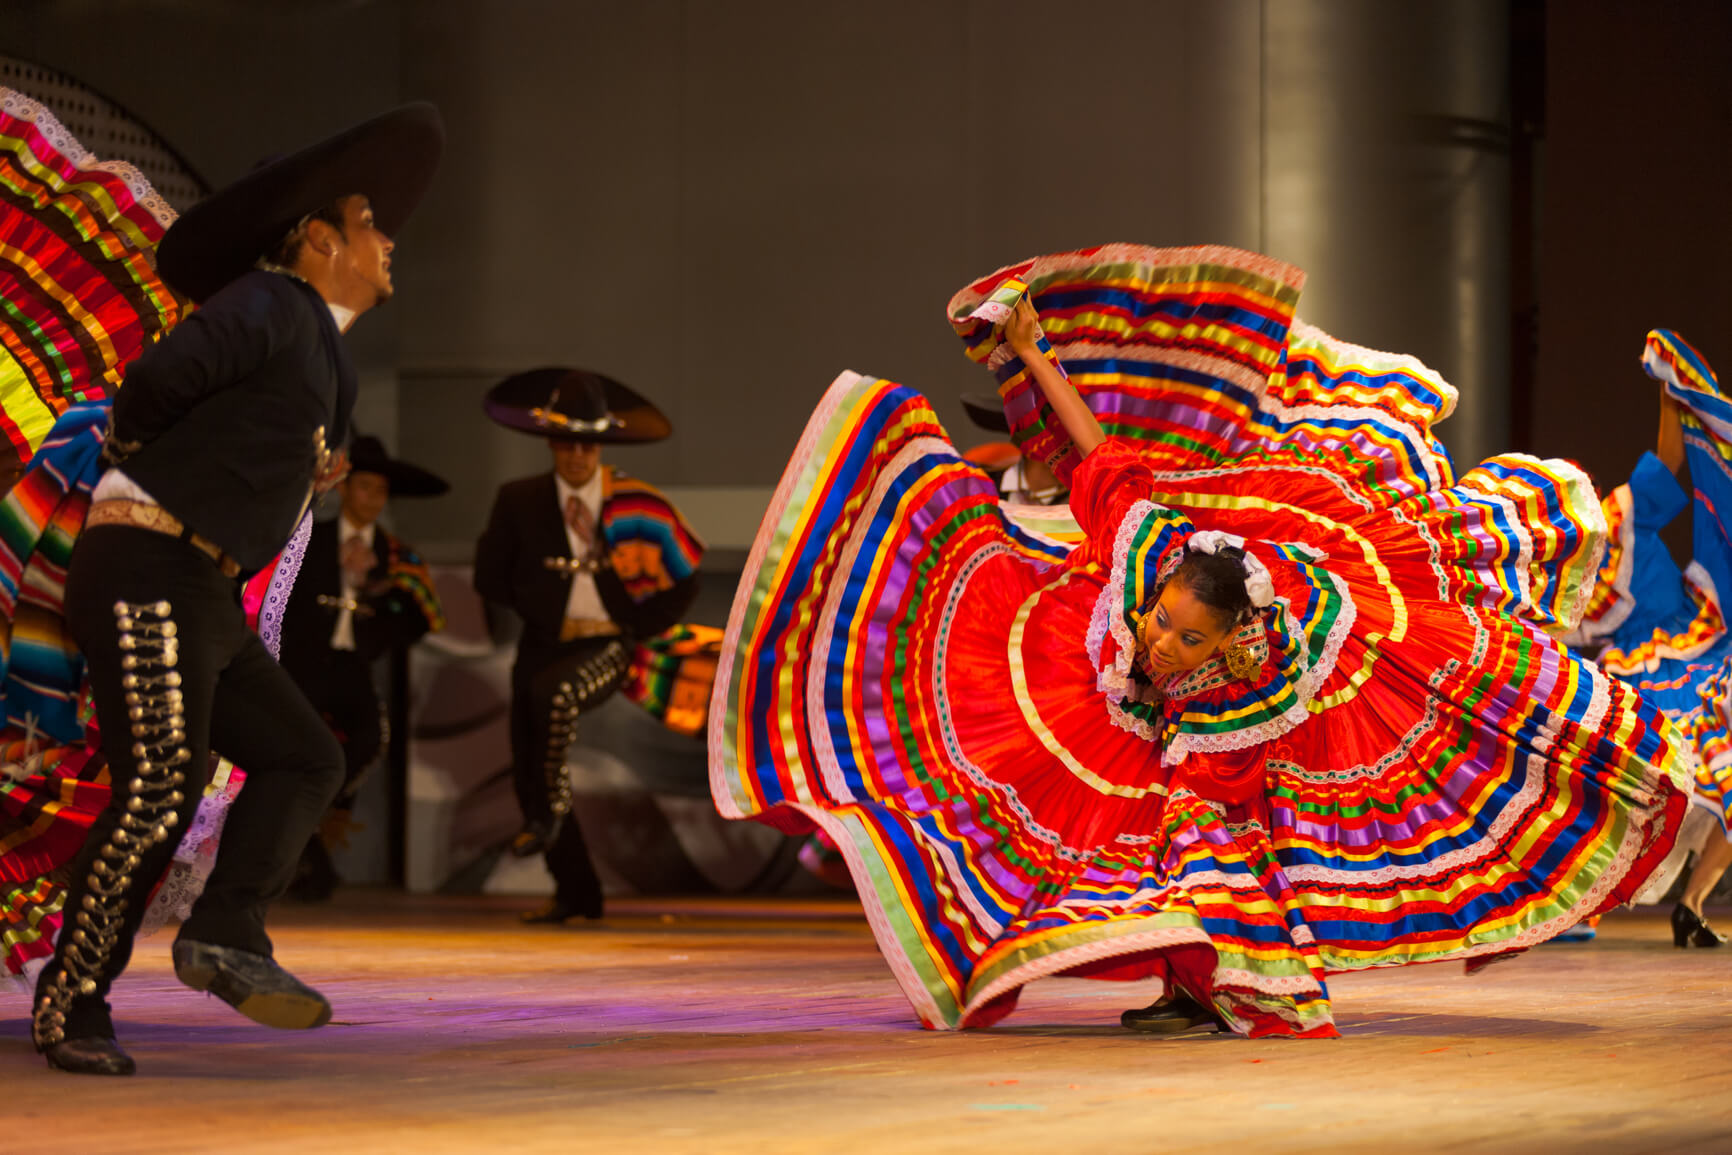 SUMMER: Chicago to Mexico City, Mexico for only $180 roundtrip (Jul-Nov dates)